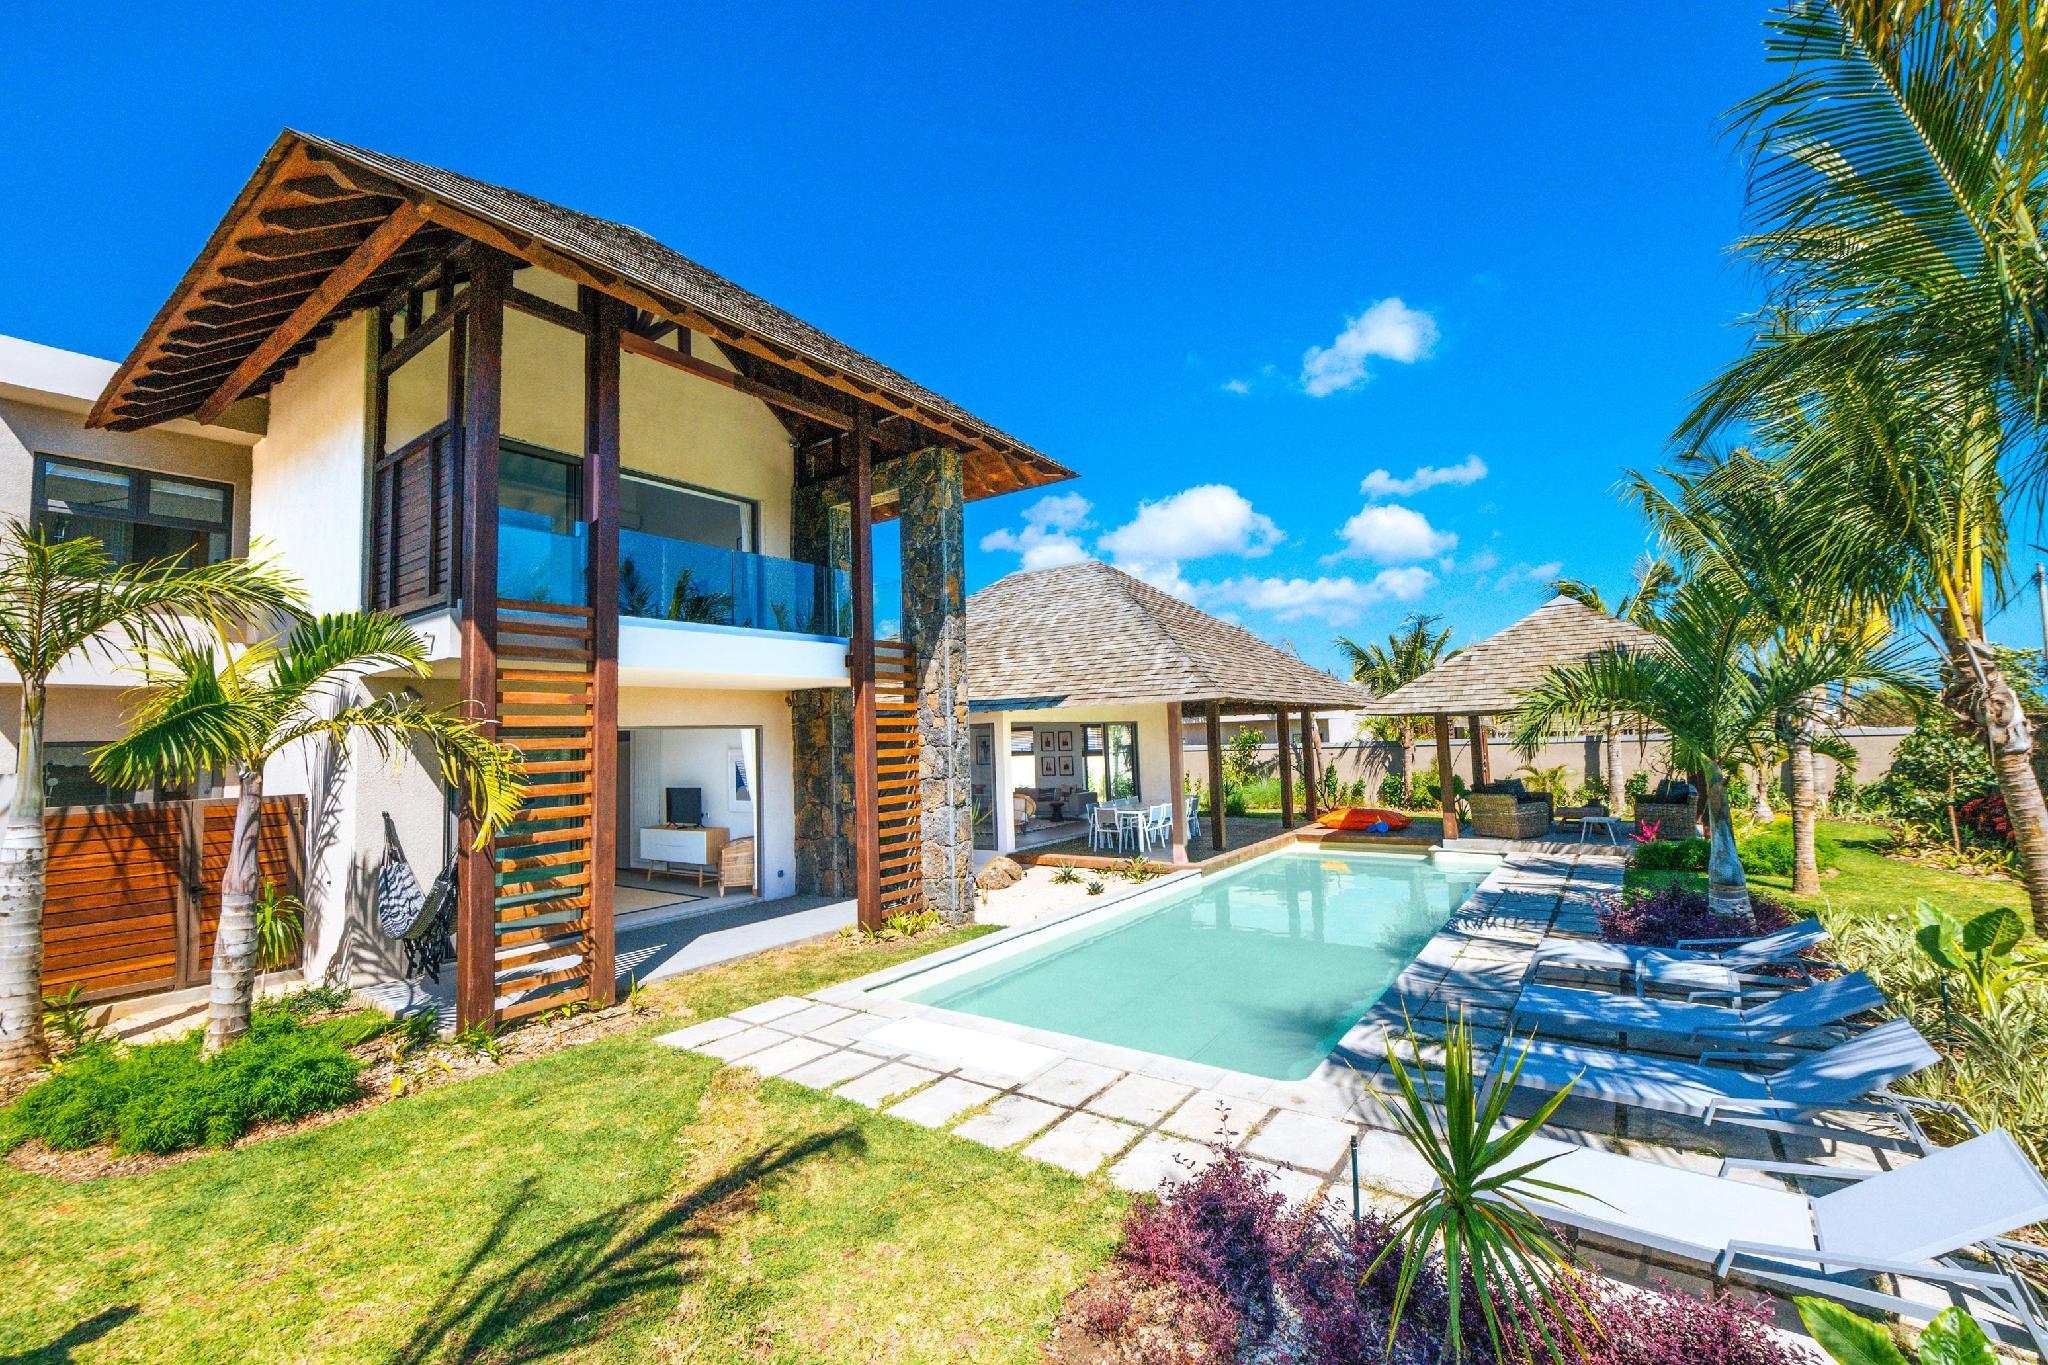 Mythic Suites And Villas